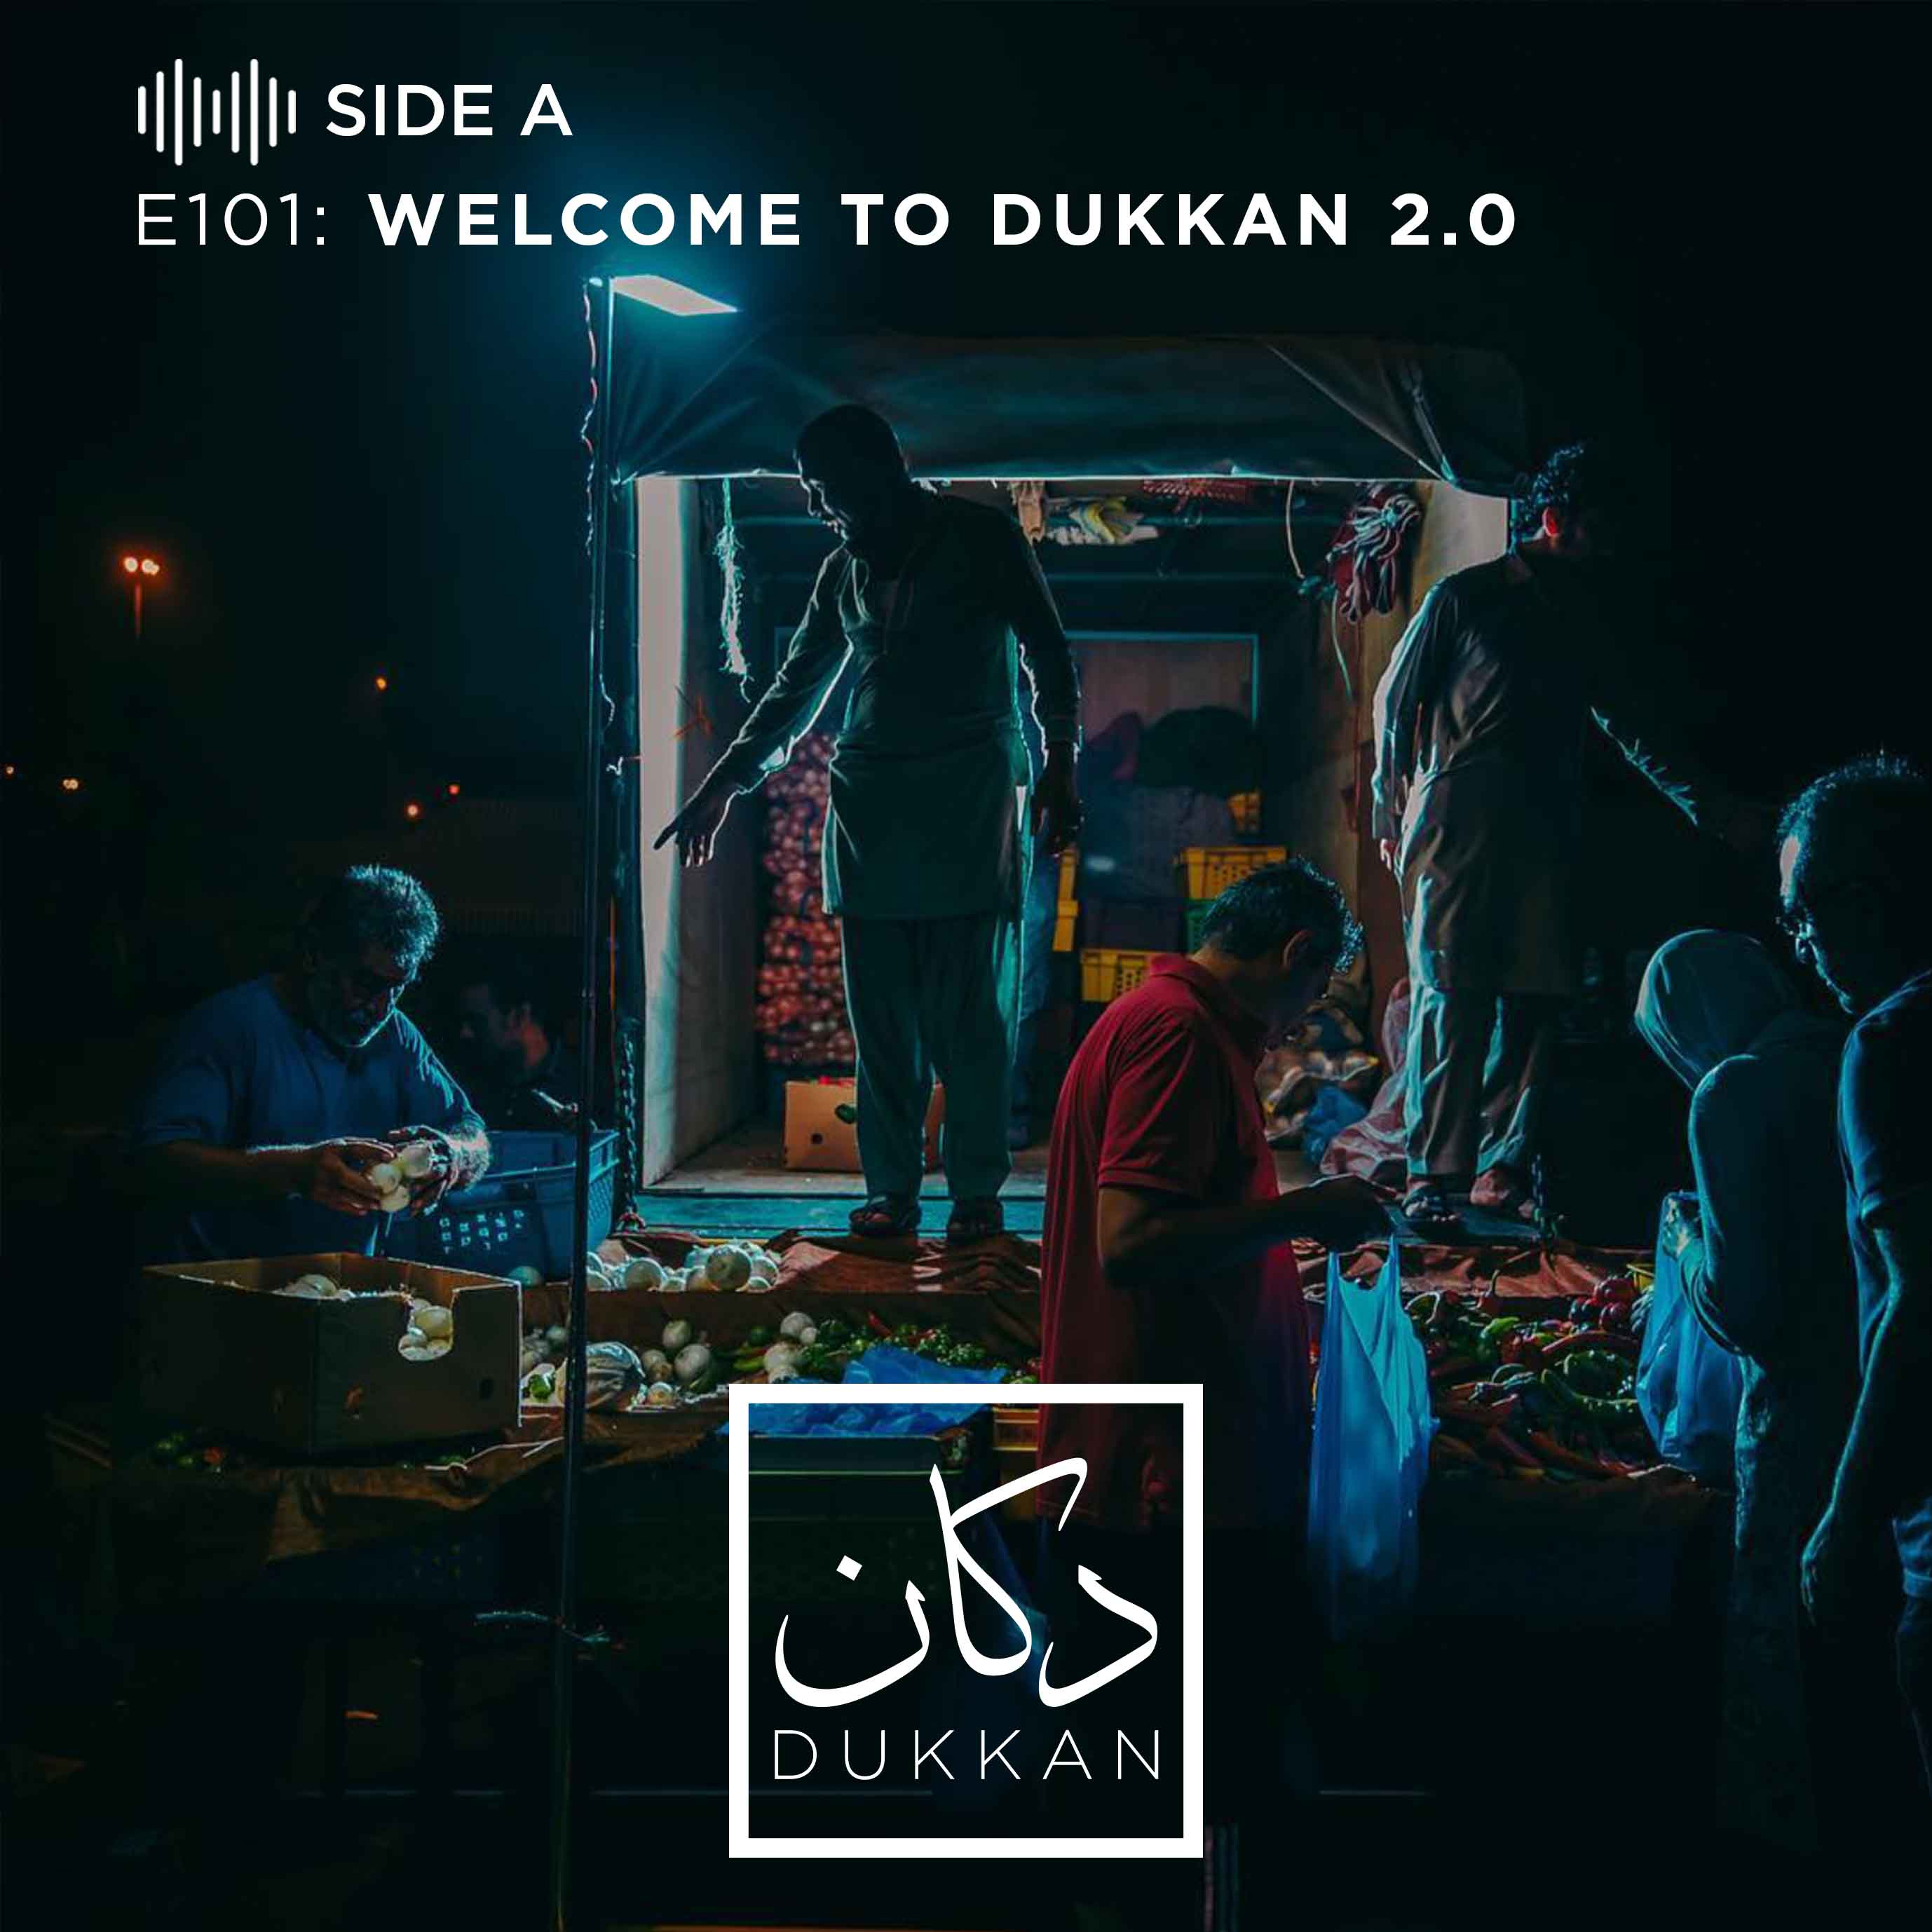 E101- Side A: Welcome To Dukkan 2.0